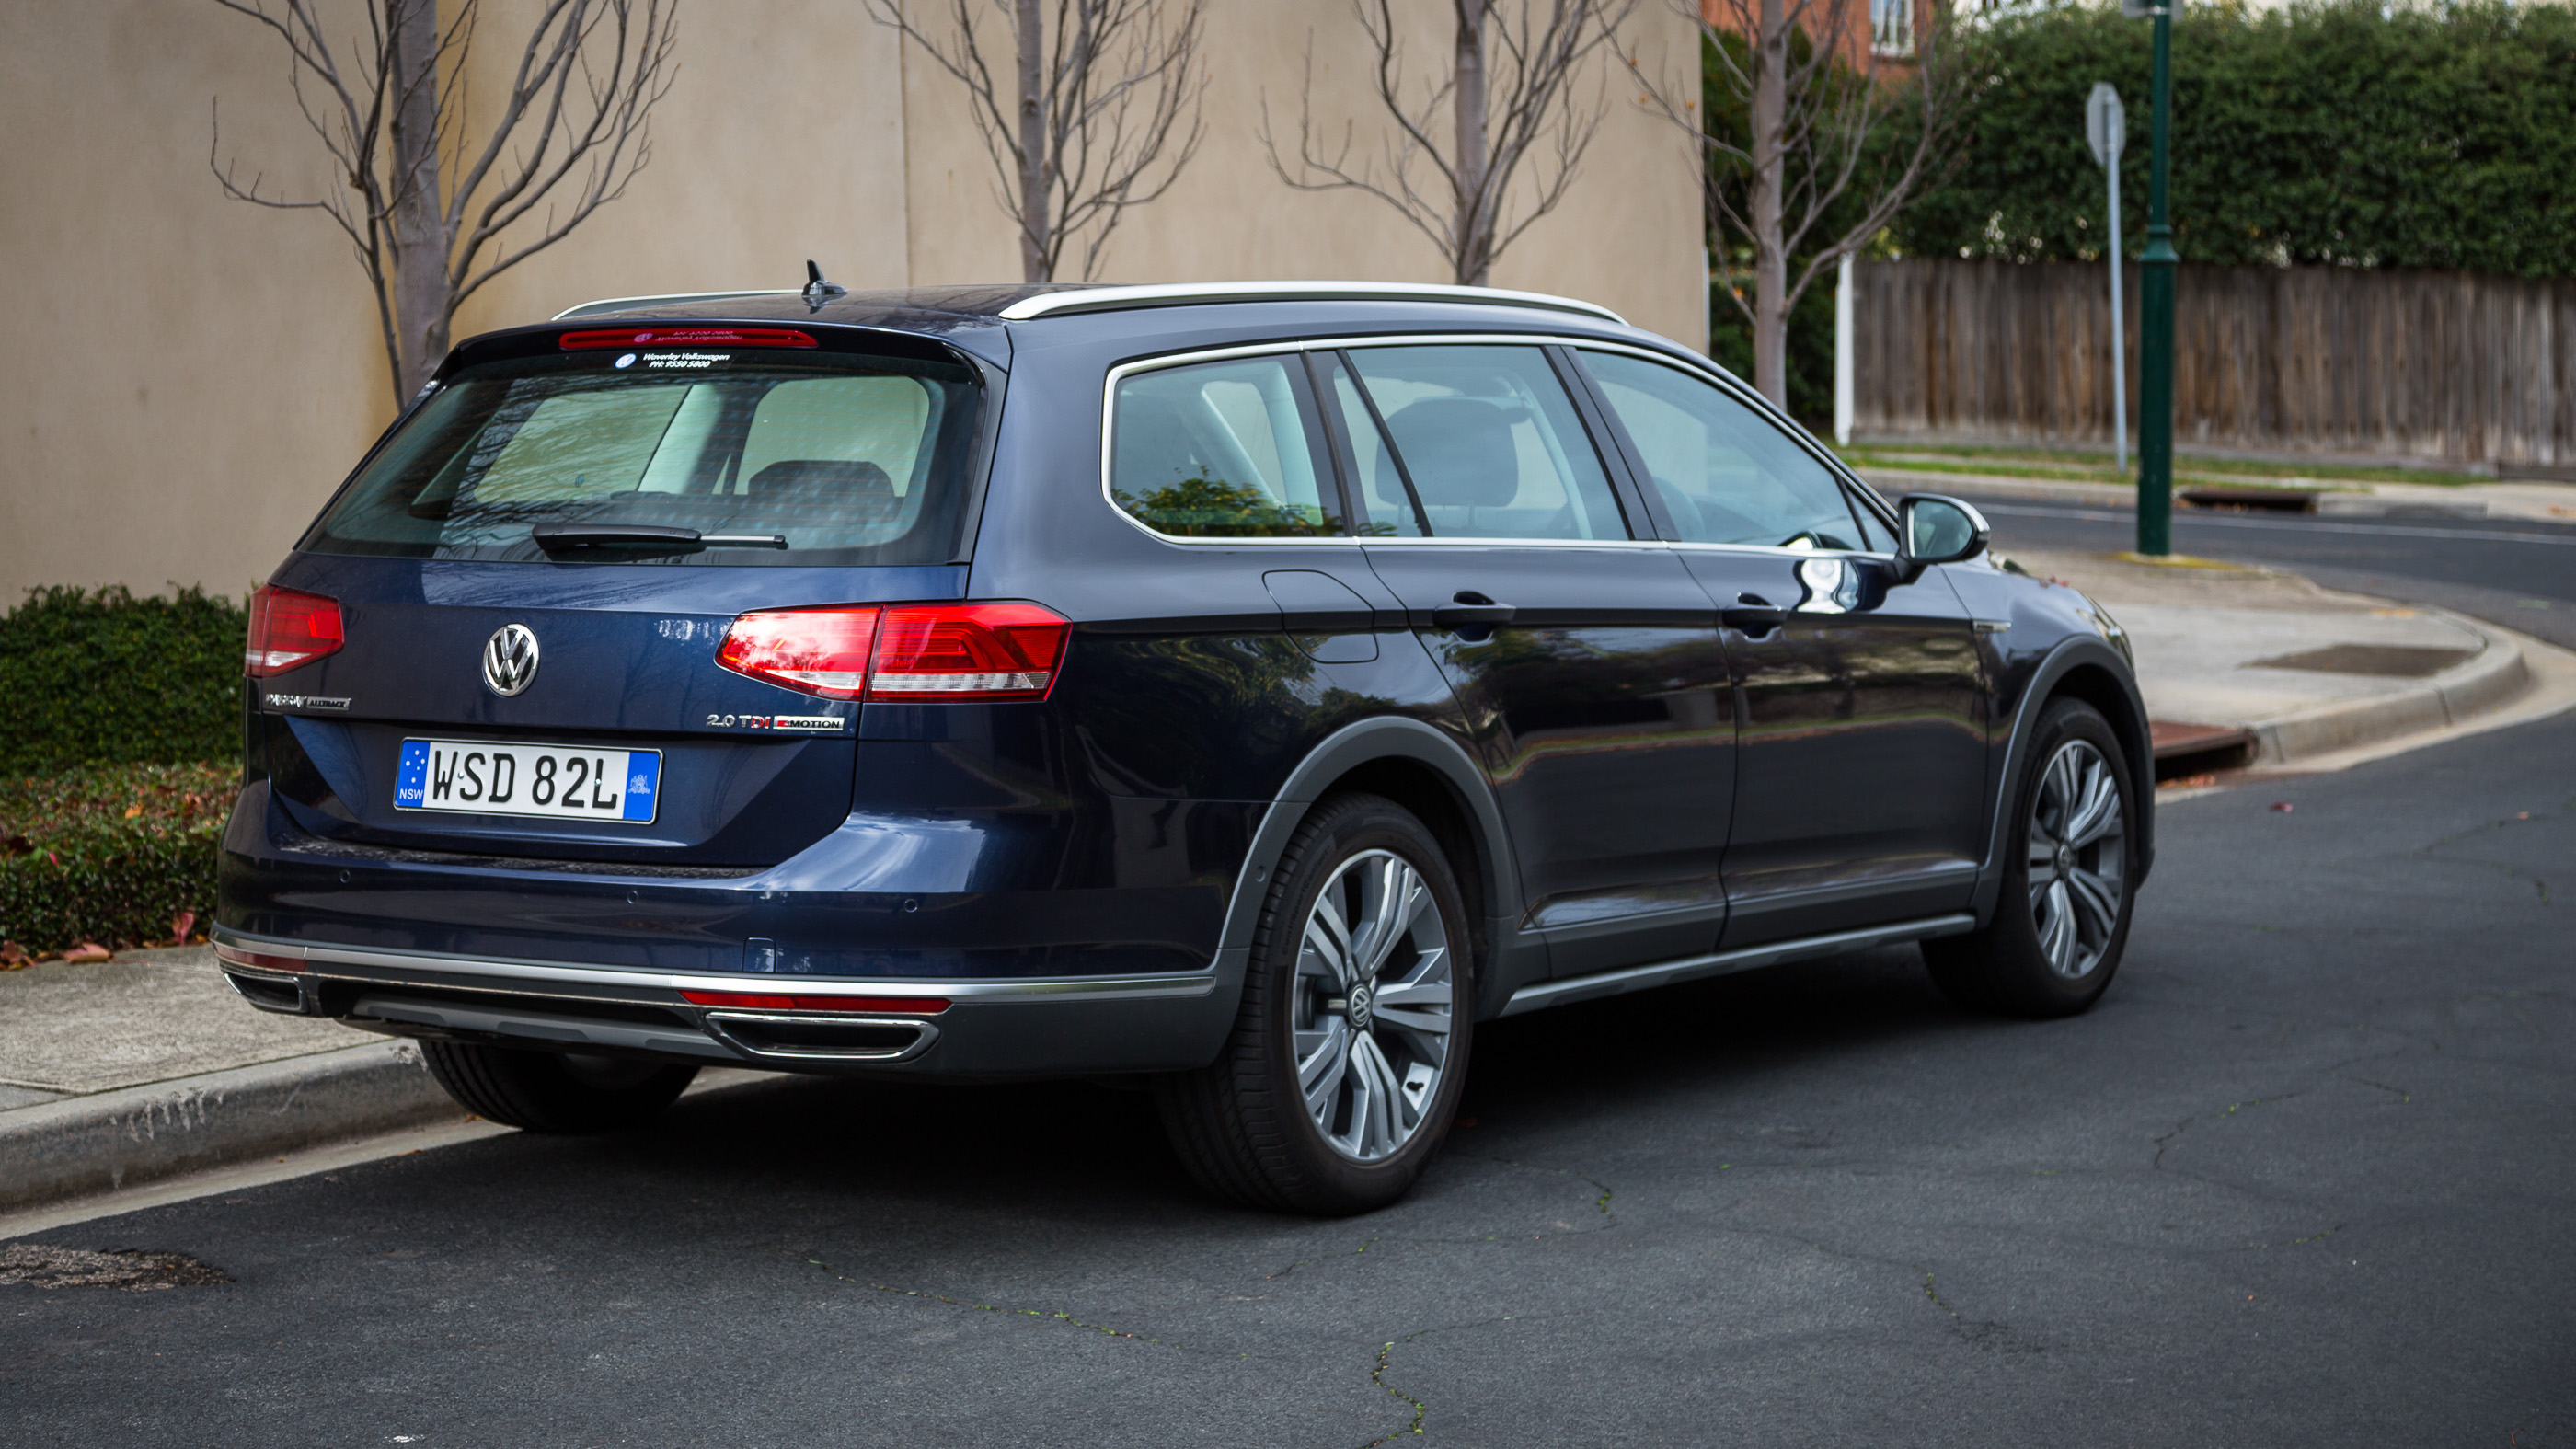 Volkswagen Passat Alltrack: specifications, photos and reviews of the owners